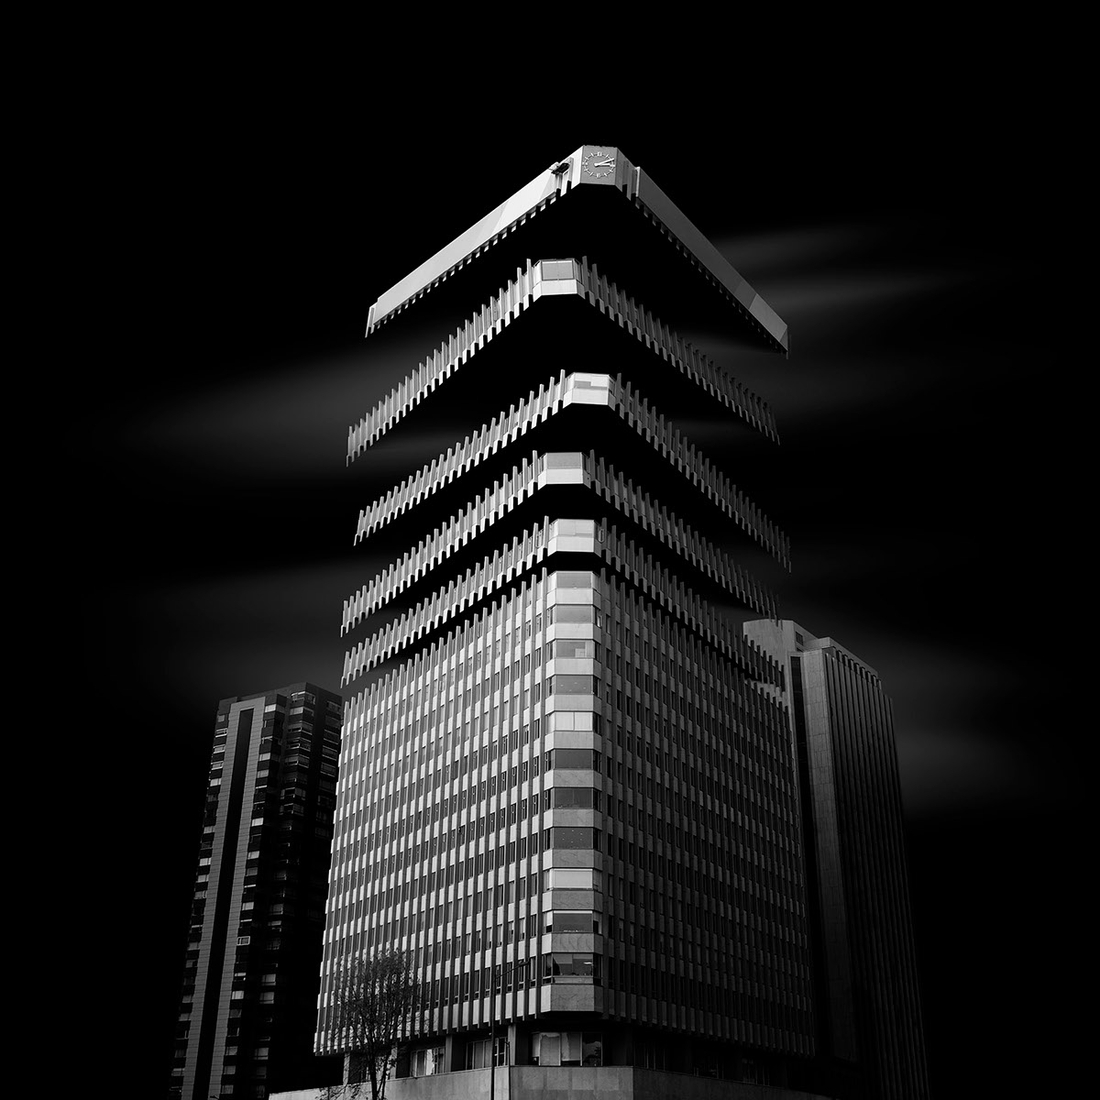 01-Daniel-Garay-Arango-Black-and-White-Surreal-Photographs-Architectural-Deconstruction-www-designstack-co